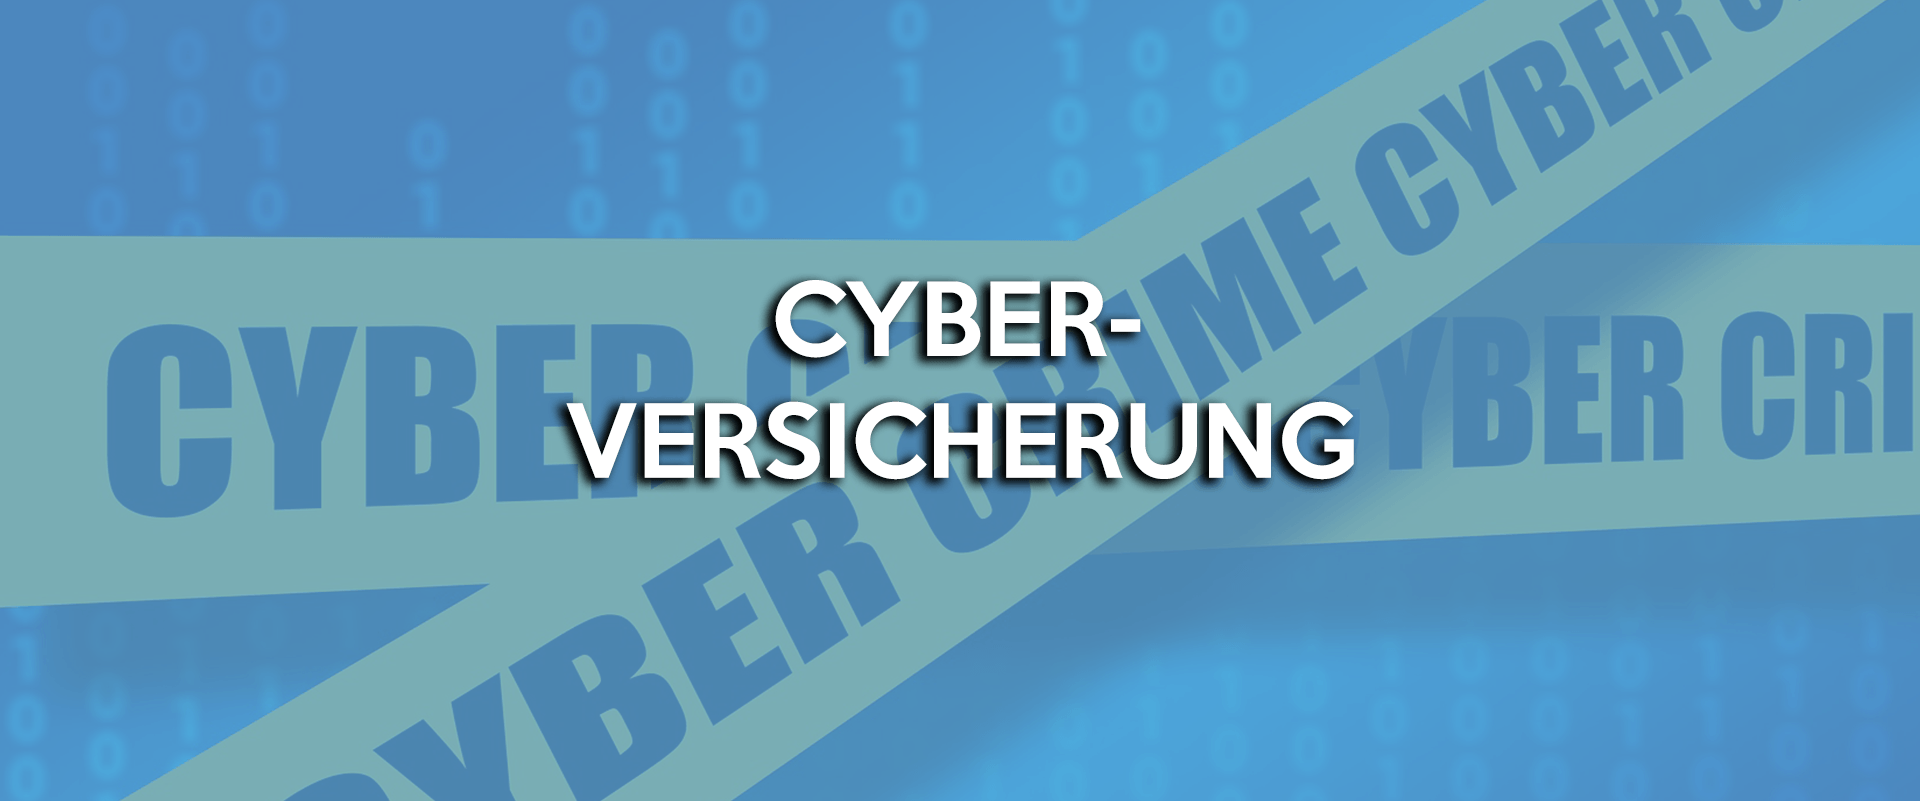 private cyberversicherung - Blog